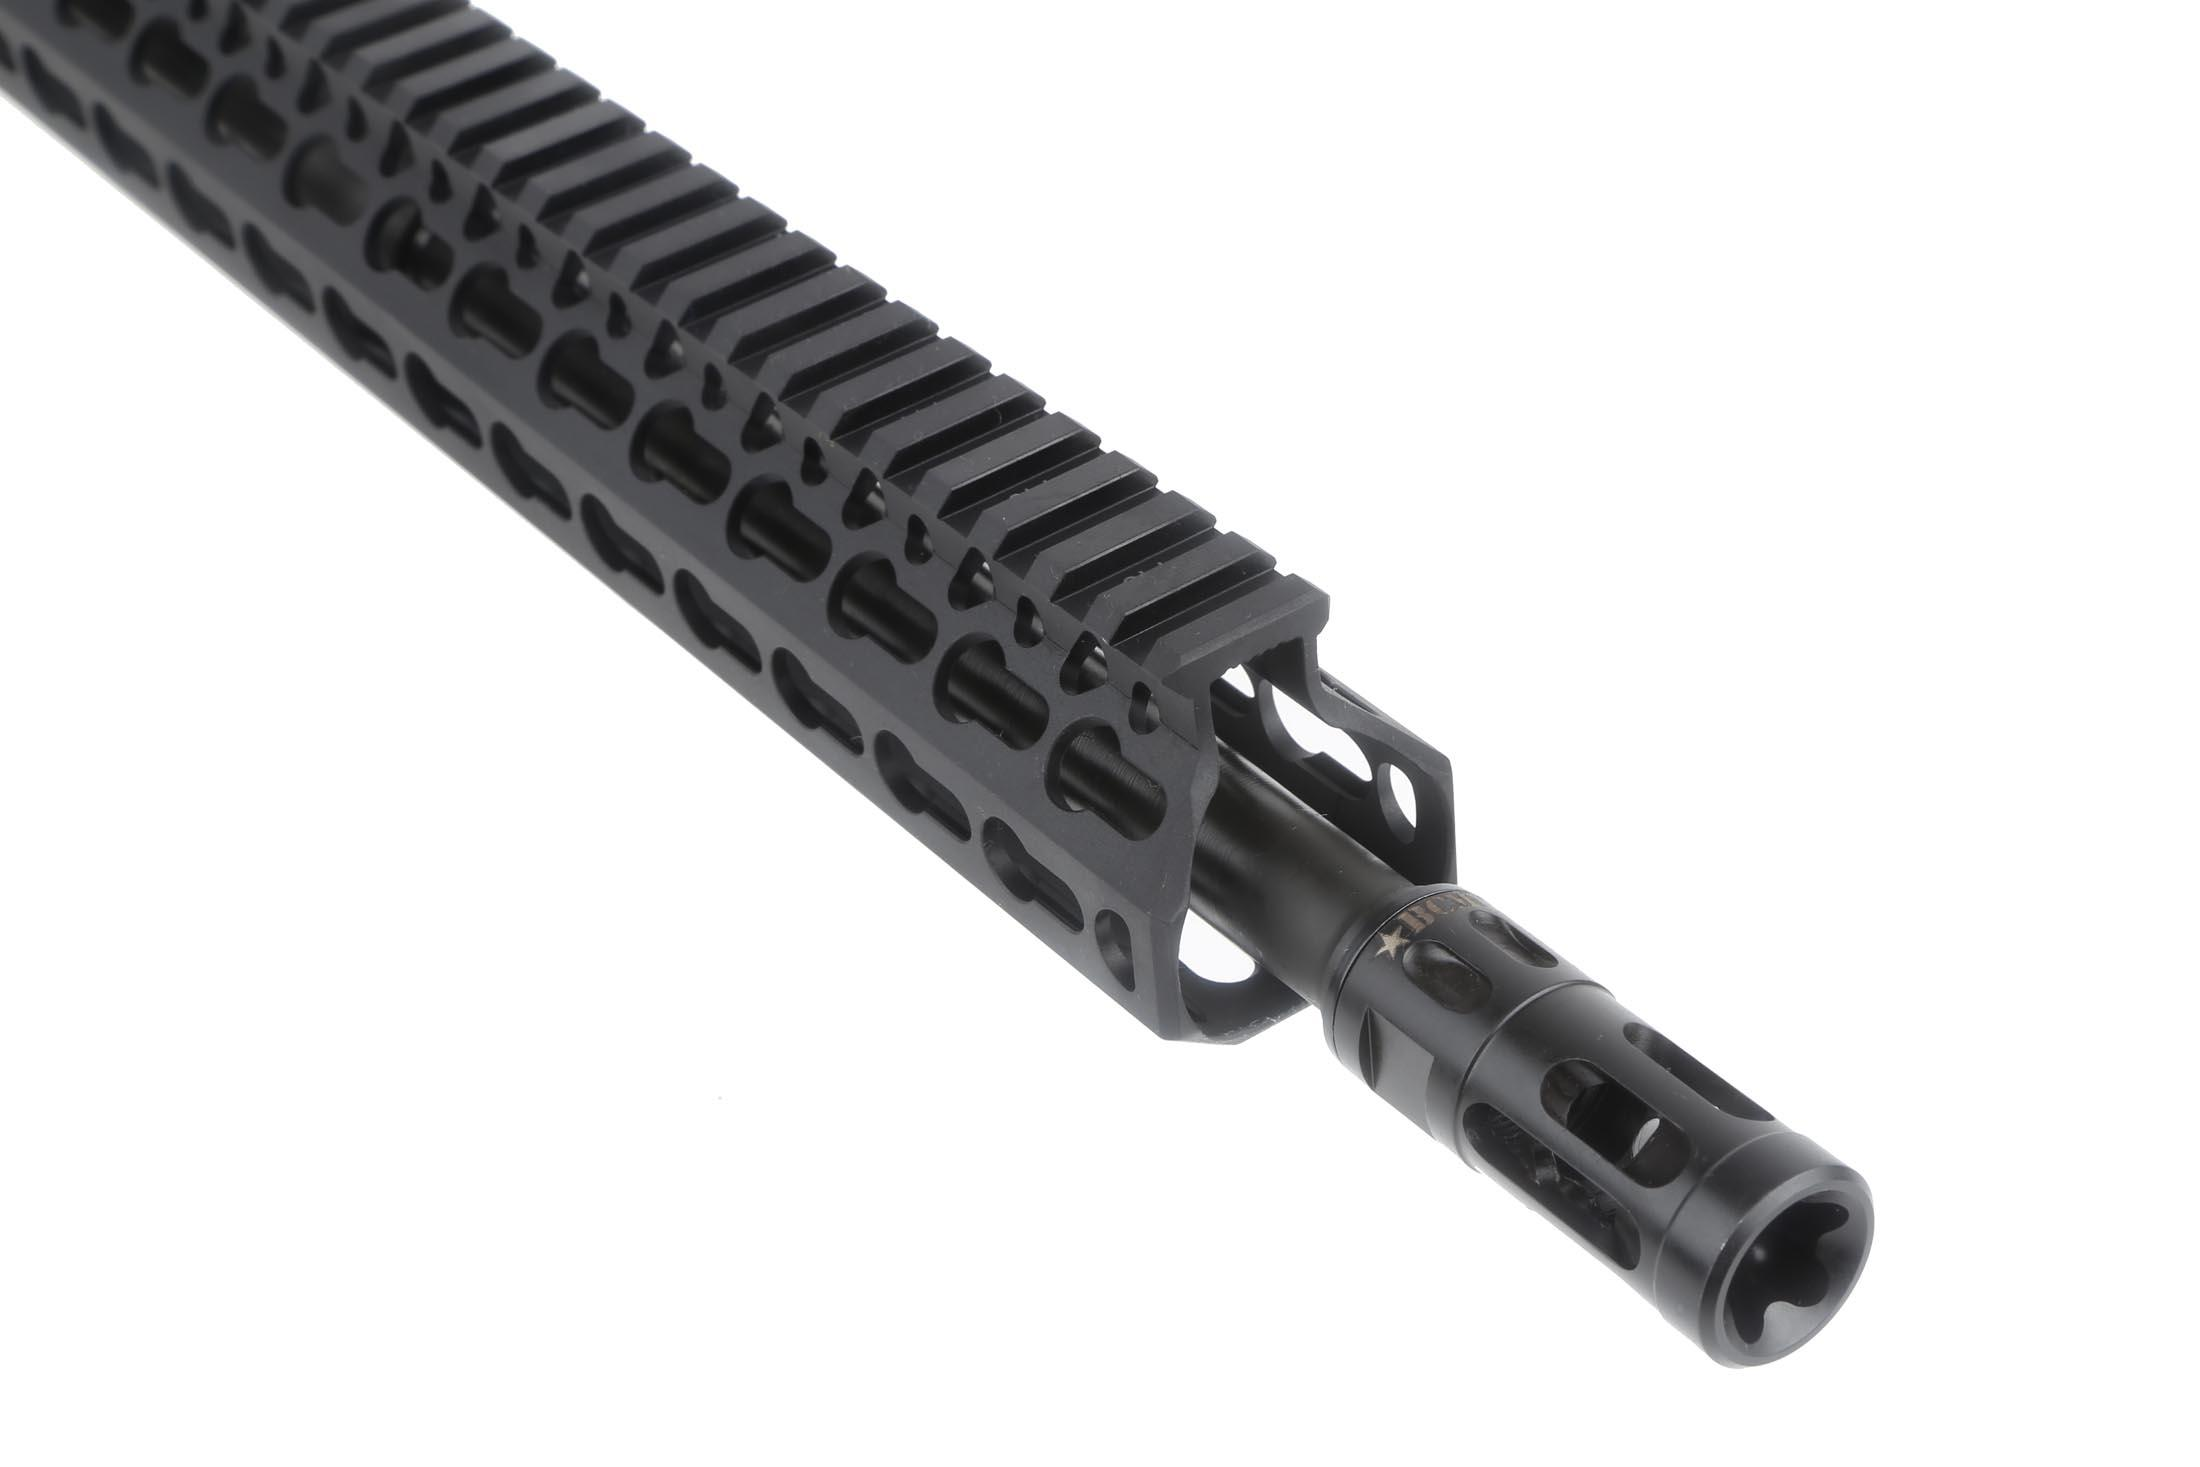 "Bravo Company Manufacturing 16 300 BLK 1:7 Tapered Contour Barreled Upper - 15"" KeyMod KMR Alpha Rail"